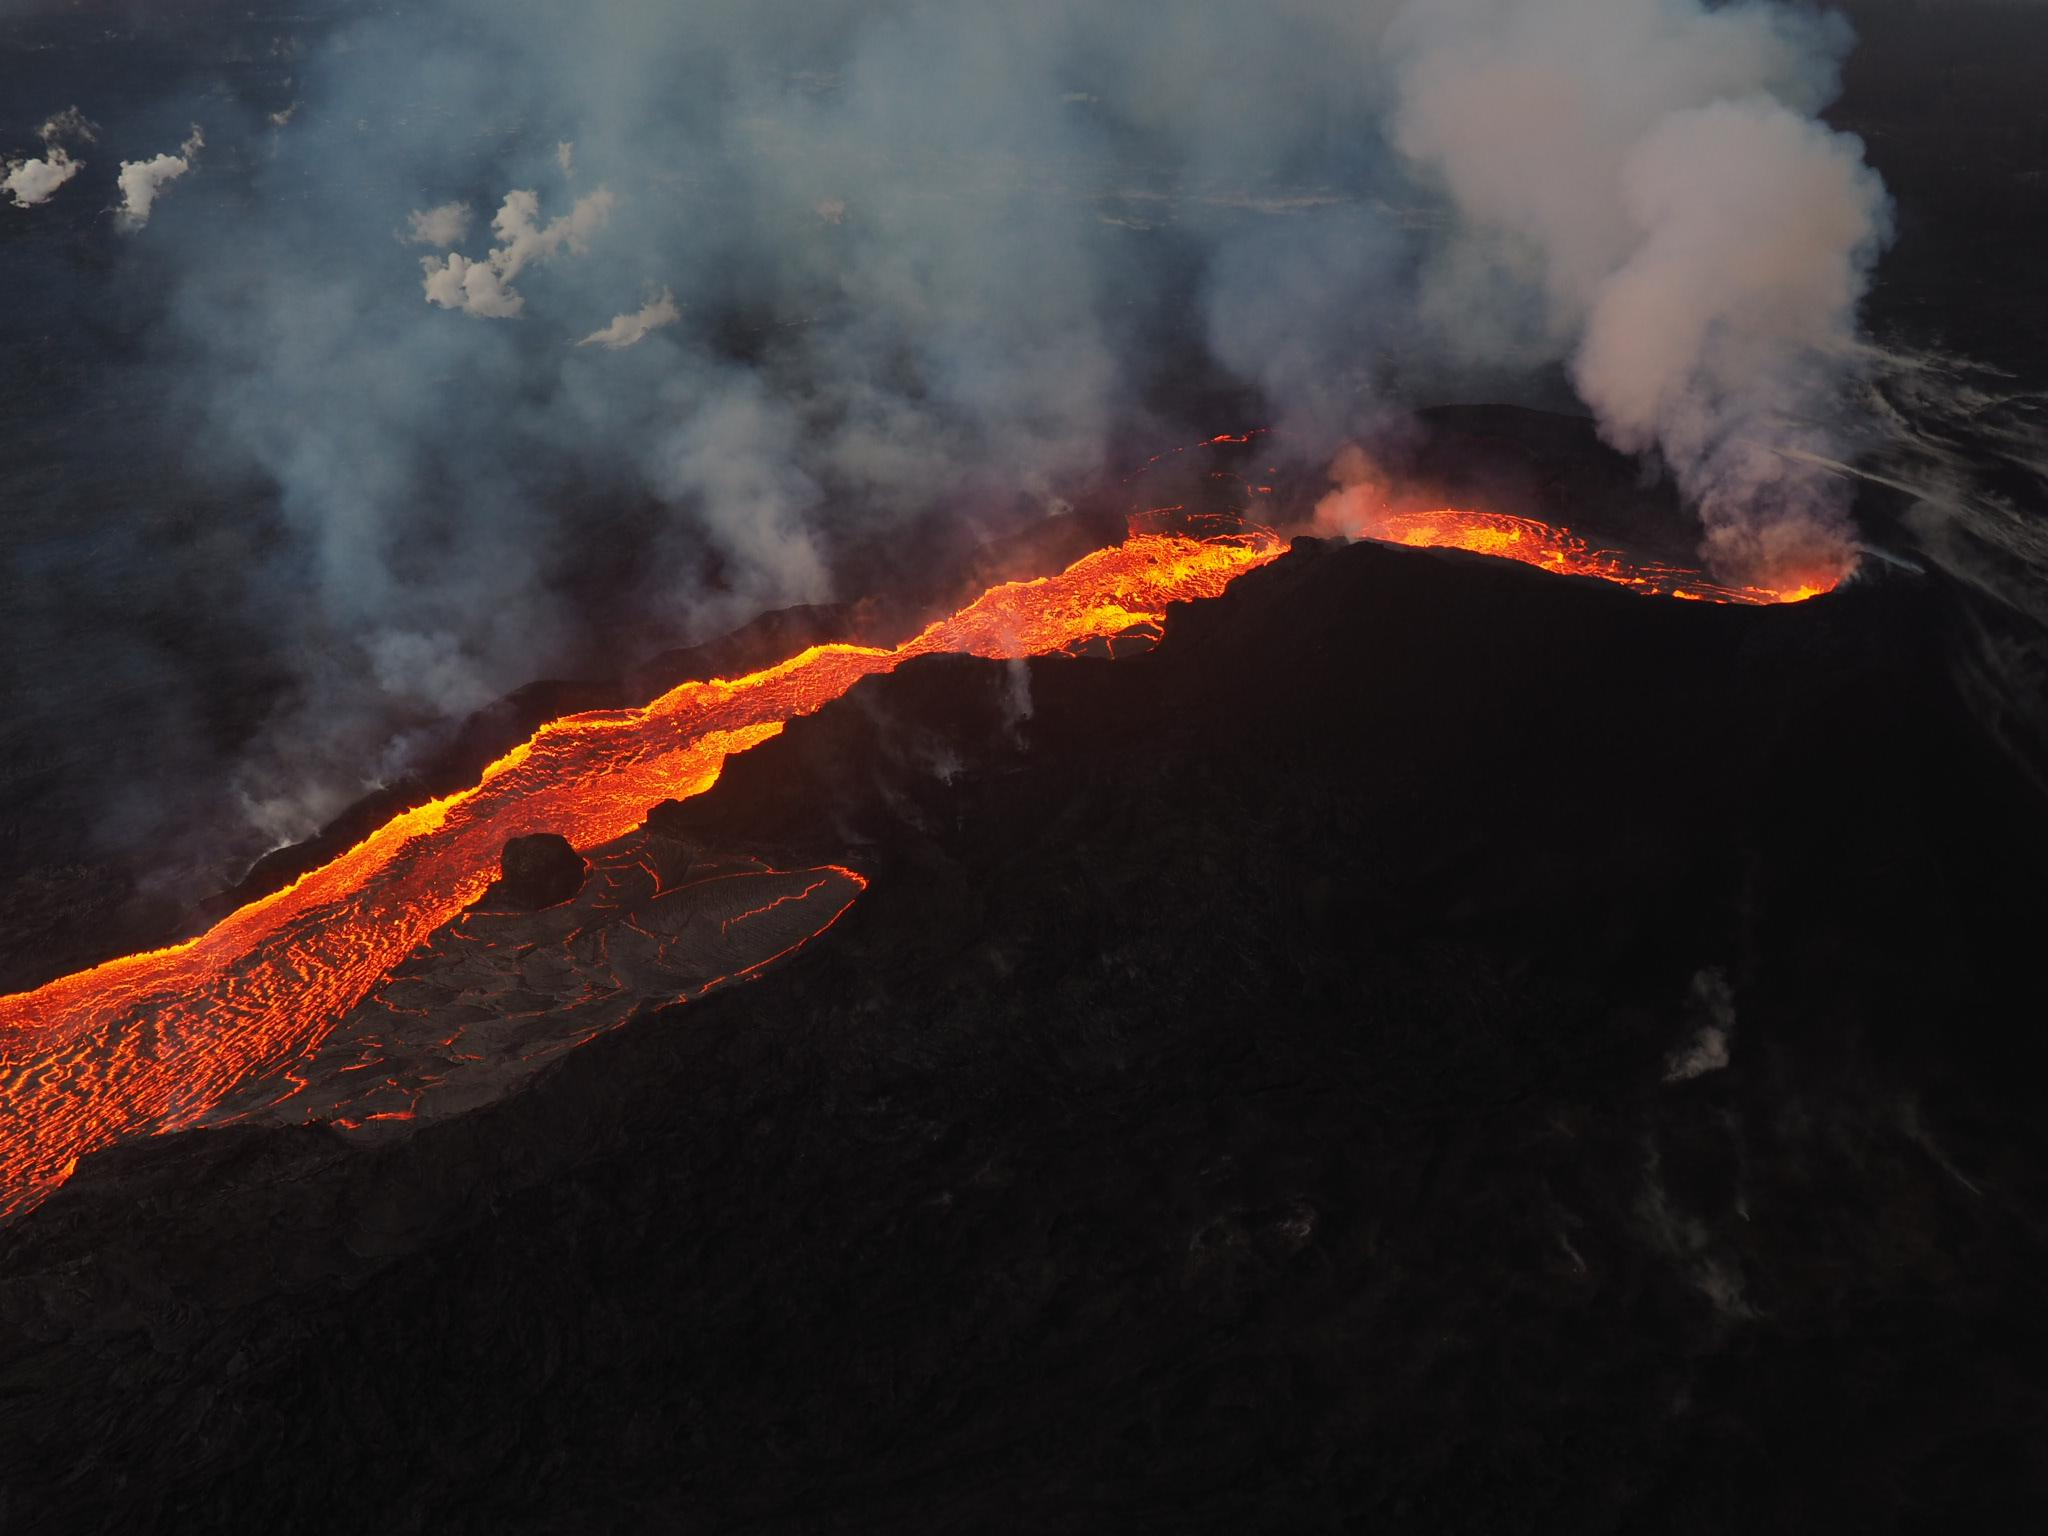 STUDY: Measuring Magma Viscosity Early Could Forecast Volcanic Eruptions